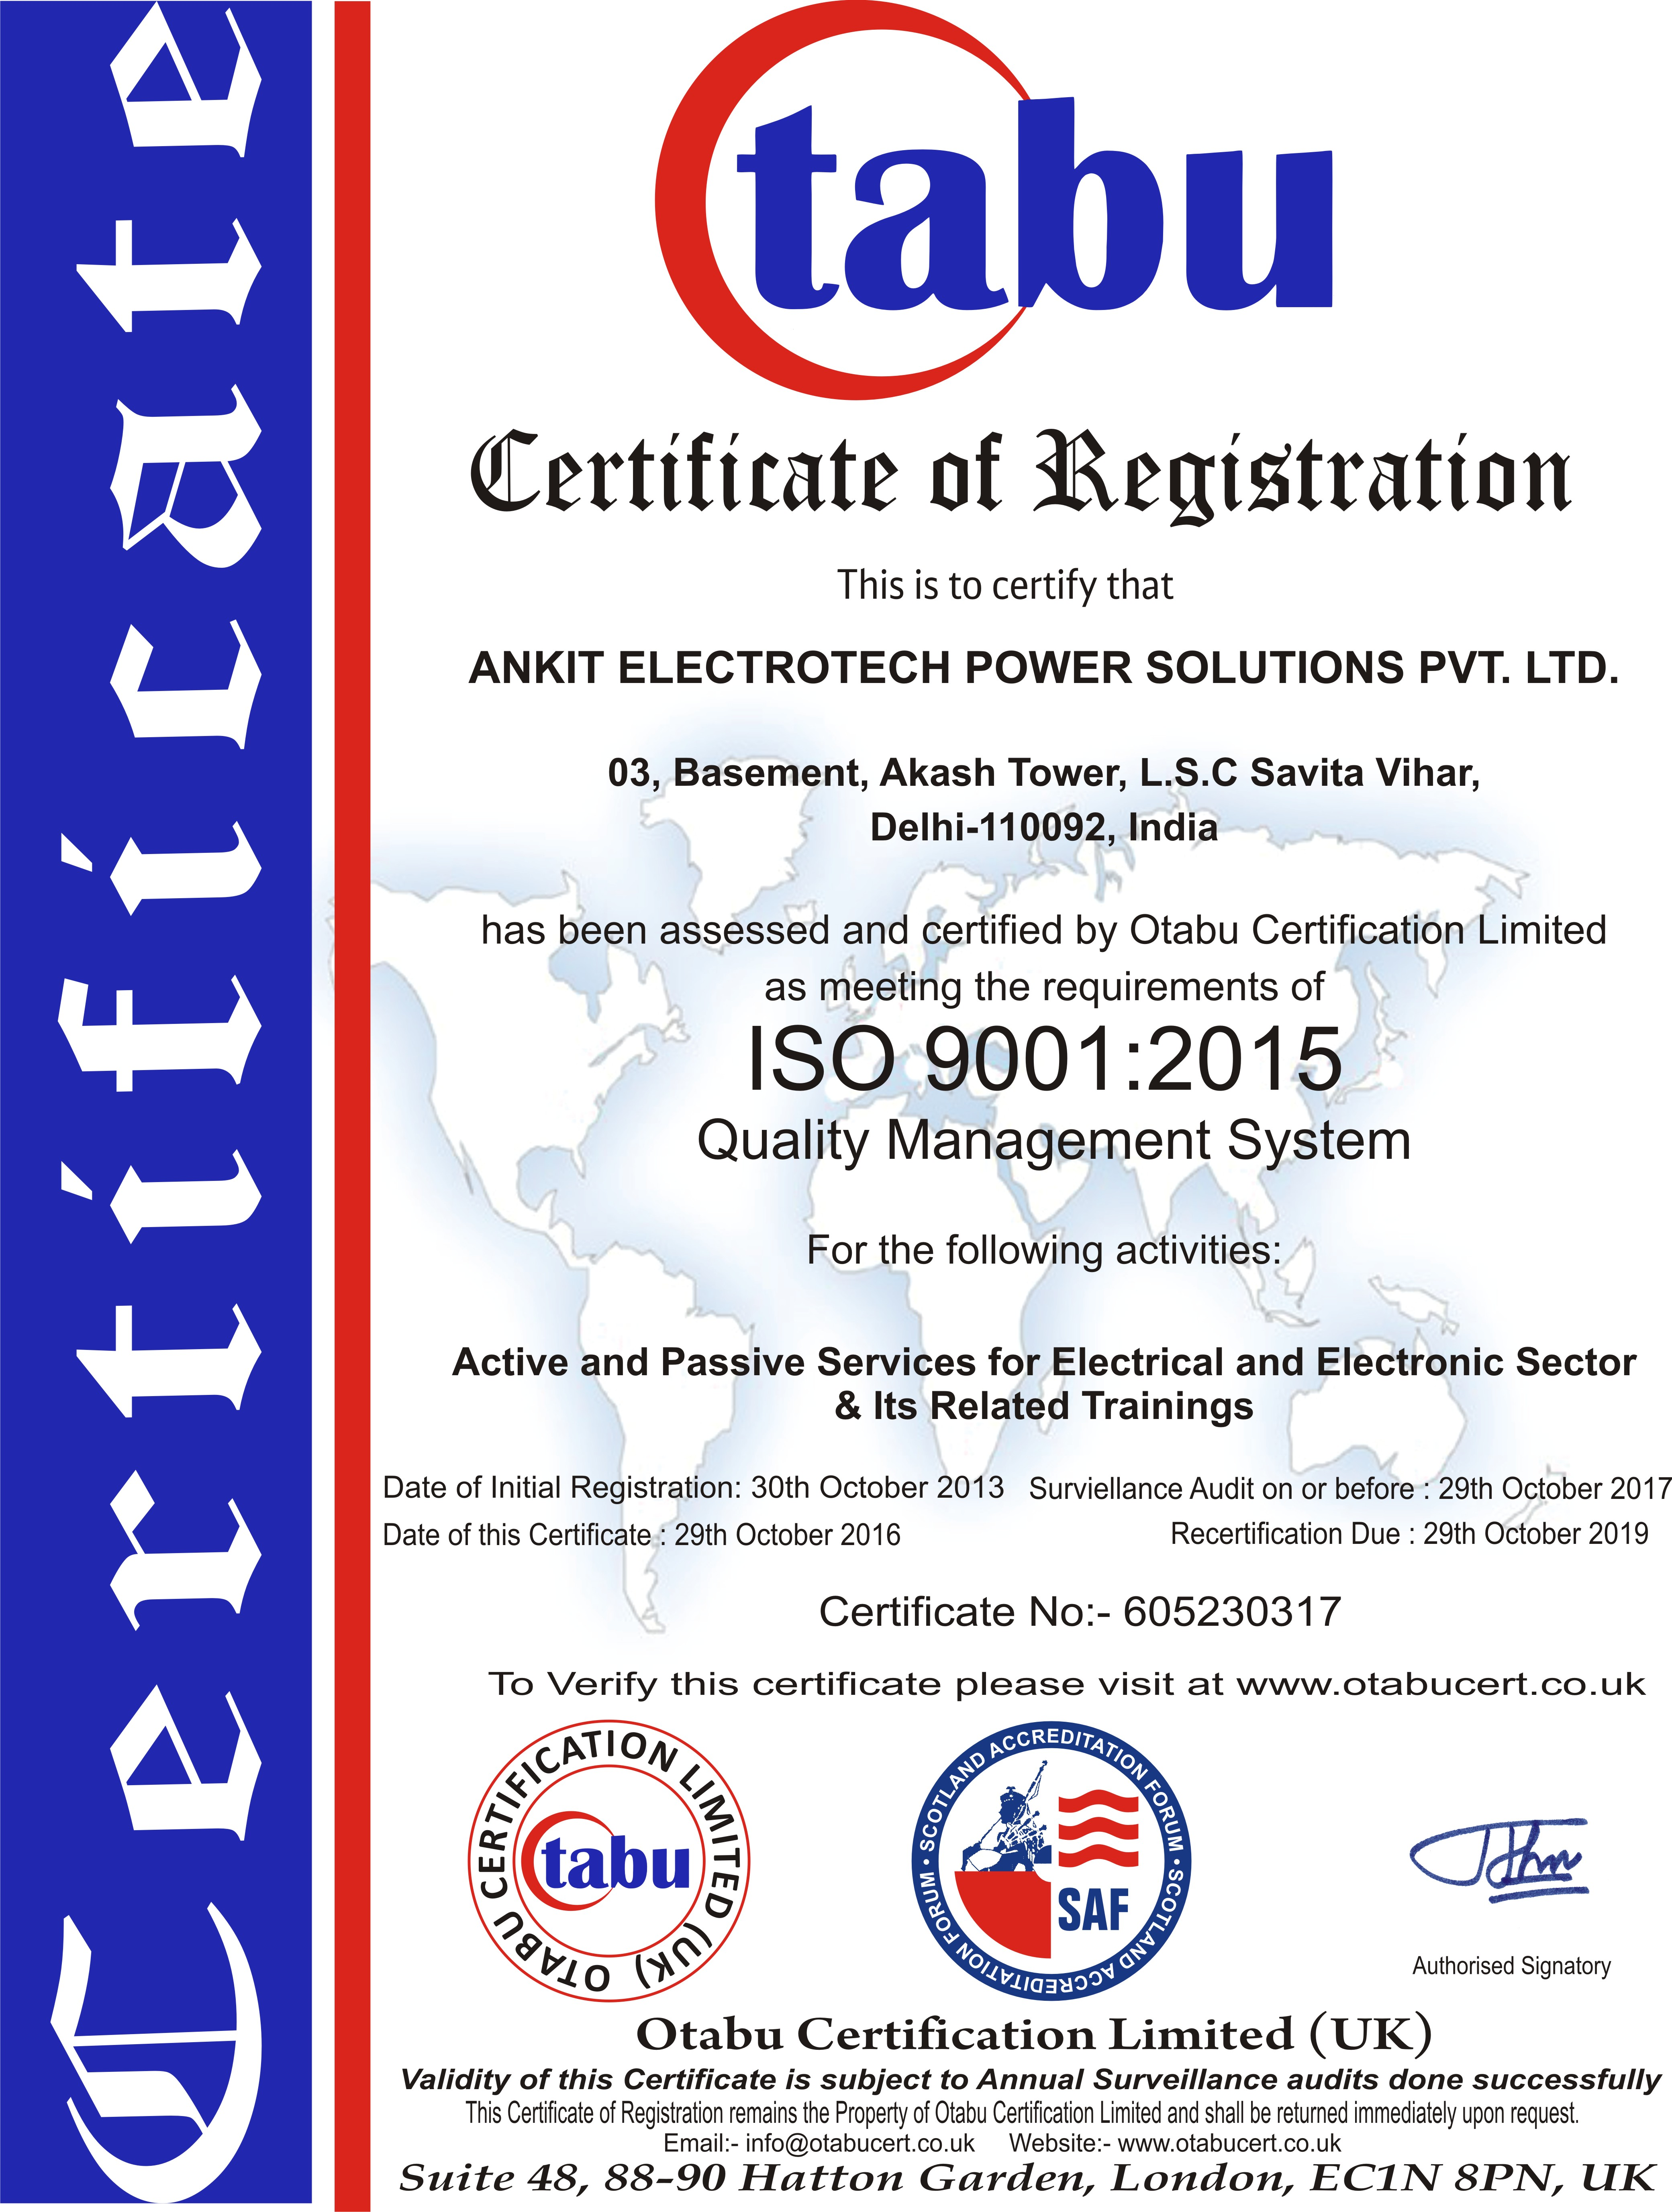 WELCOME TO ANKIT ELECTROTECH